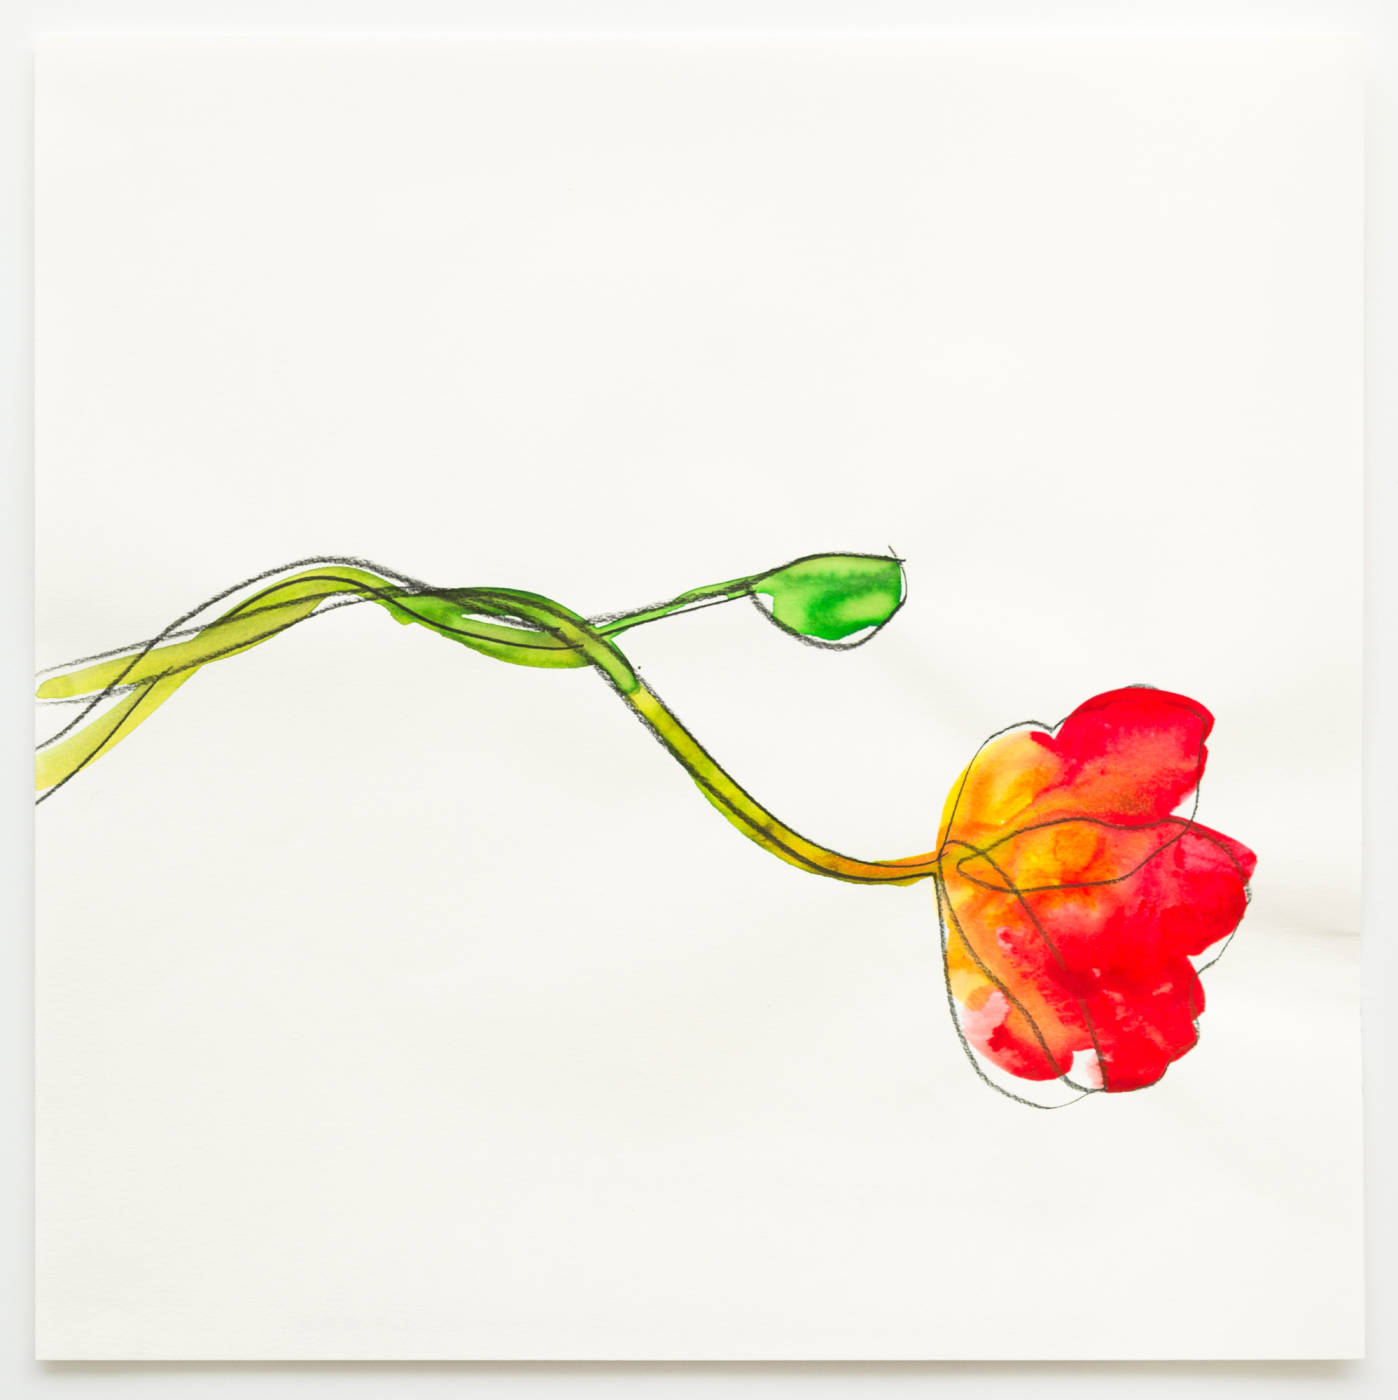 Mapplethorpe's Flowers IV